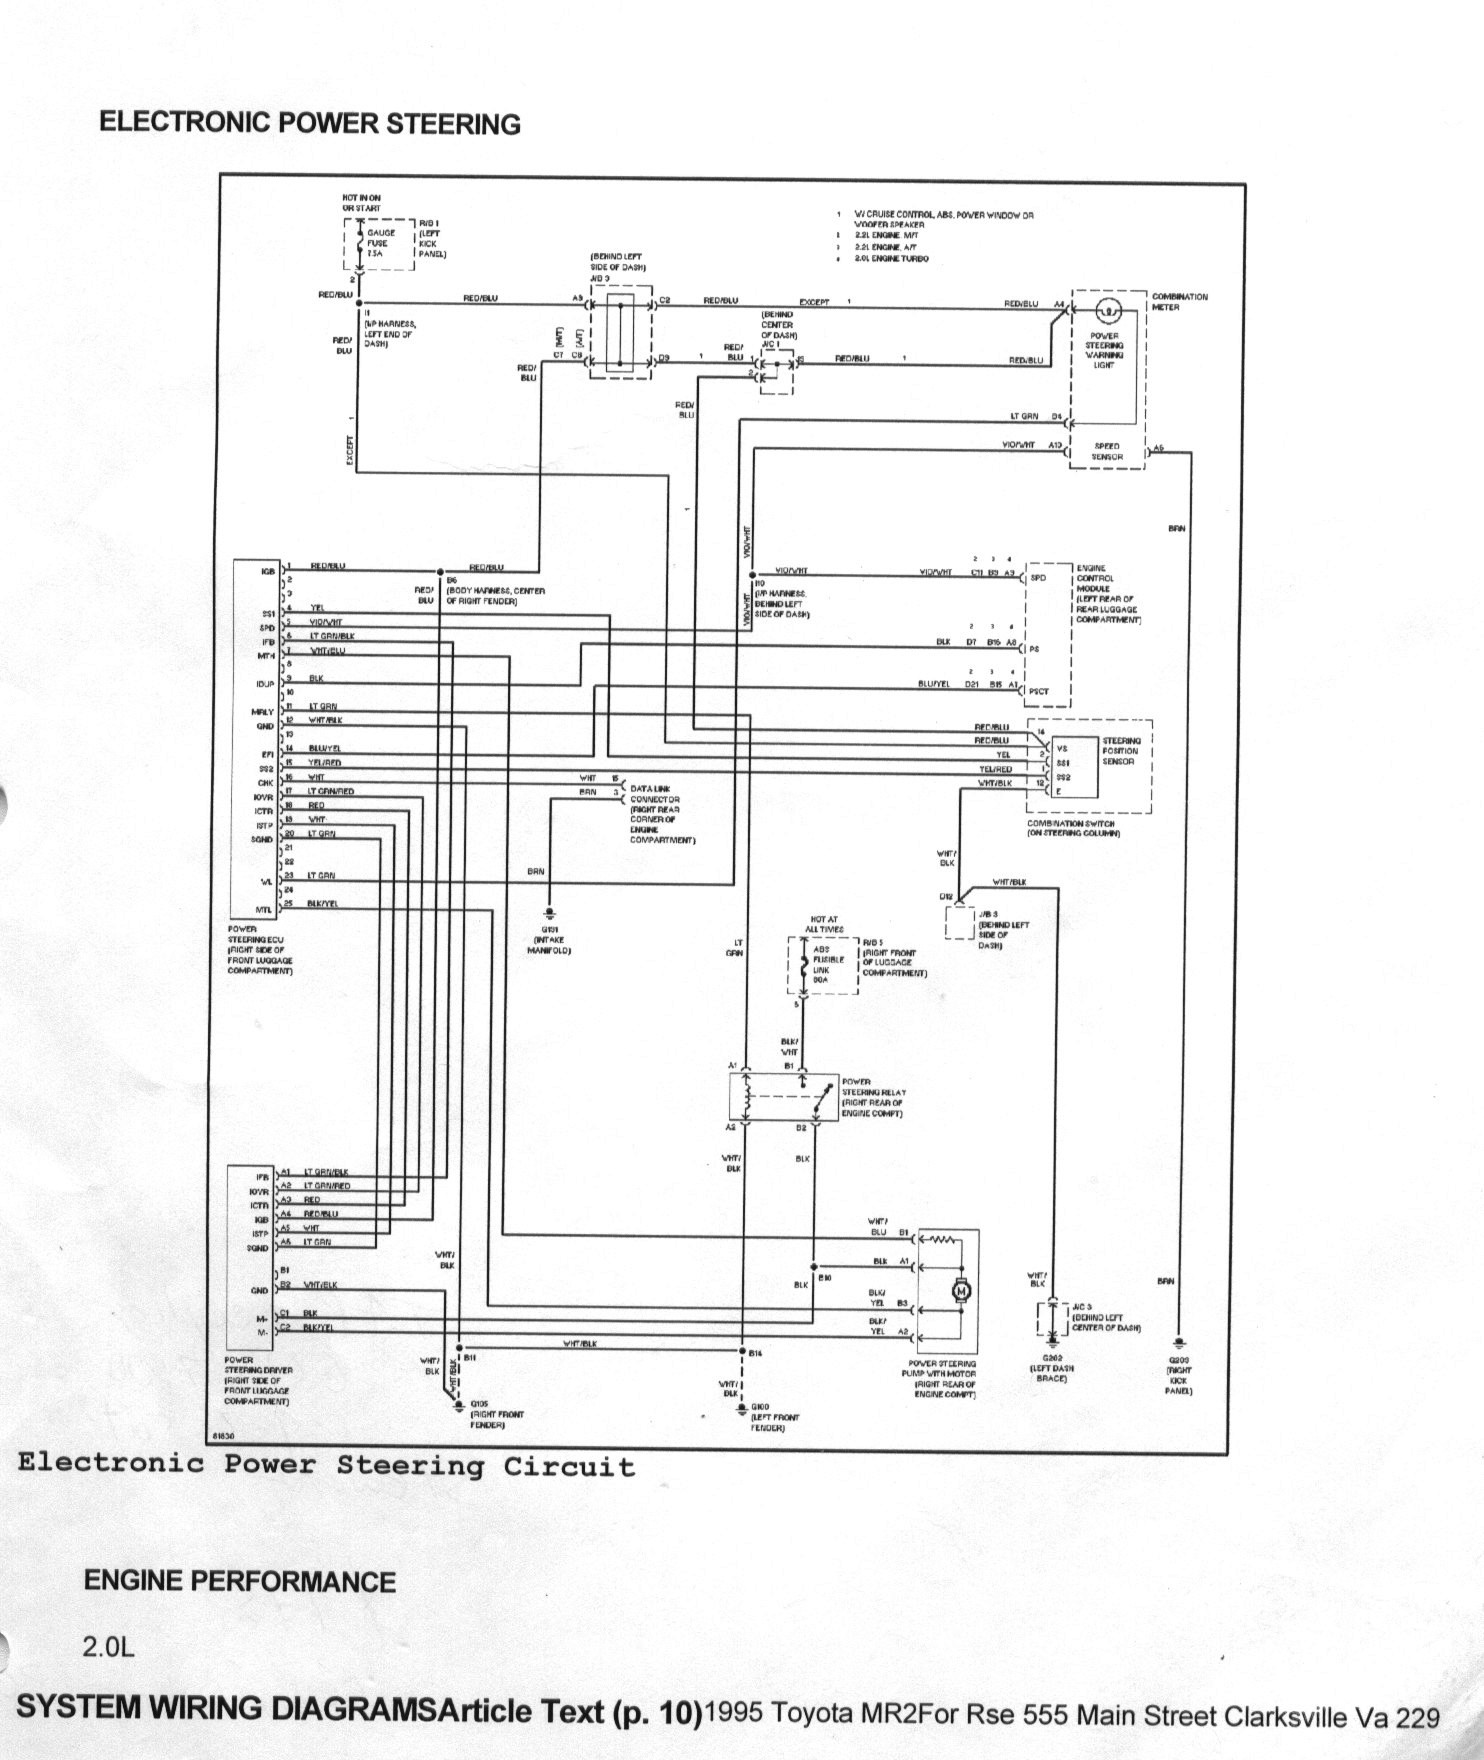 Toyota Mr2 Electrical Wiring Diagram Manual Turbo 2